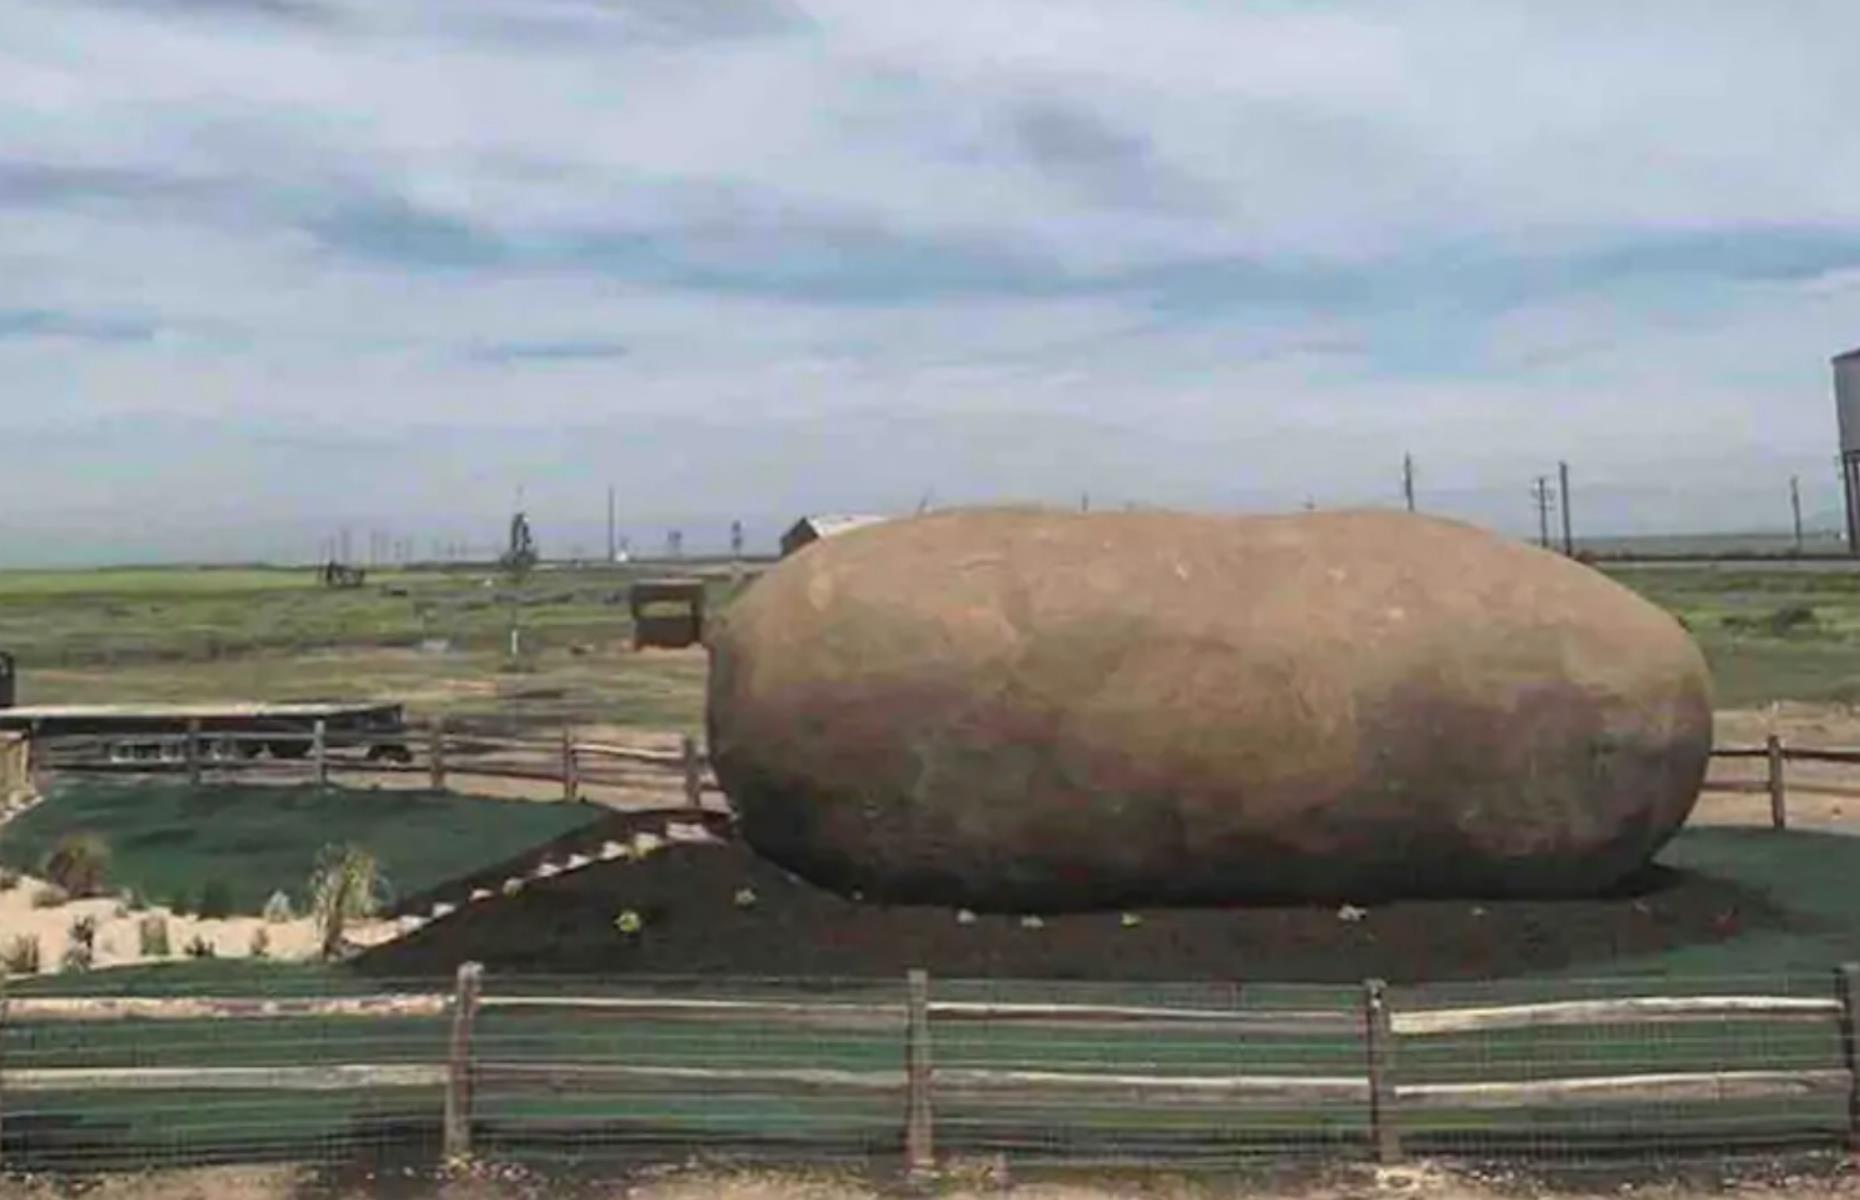 Slide 14 of 52: Where else could you sleep in a giant potato but Idaho? This six-ton spud spent seven years on the road as part of the Idaho Potato Commission's Big Idaho Potato Tour around the US. It's now retired and lives on a 400-acre farm near downtown Boise, having been beautifully restored into a one-bedroom retreat. The interior, with whitewashed walls, plants and chic pink furniture, is an elegant surprise – as is the gorgeous outdoor bathroom housed in a converted silo.